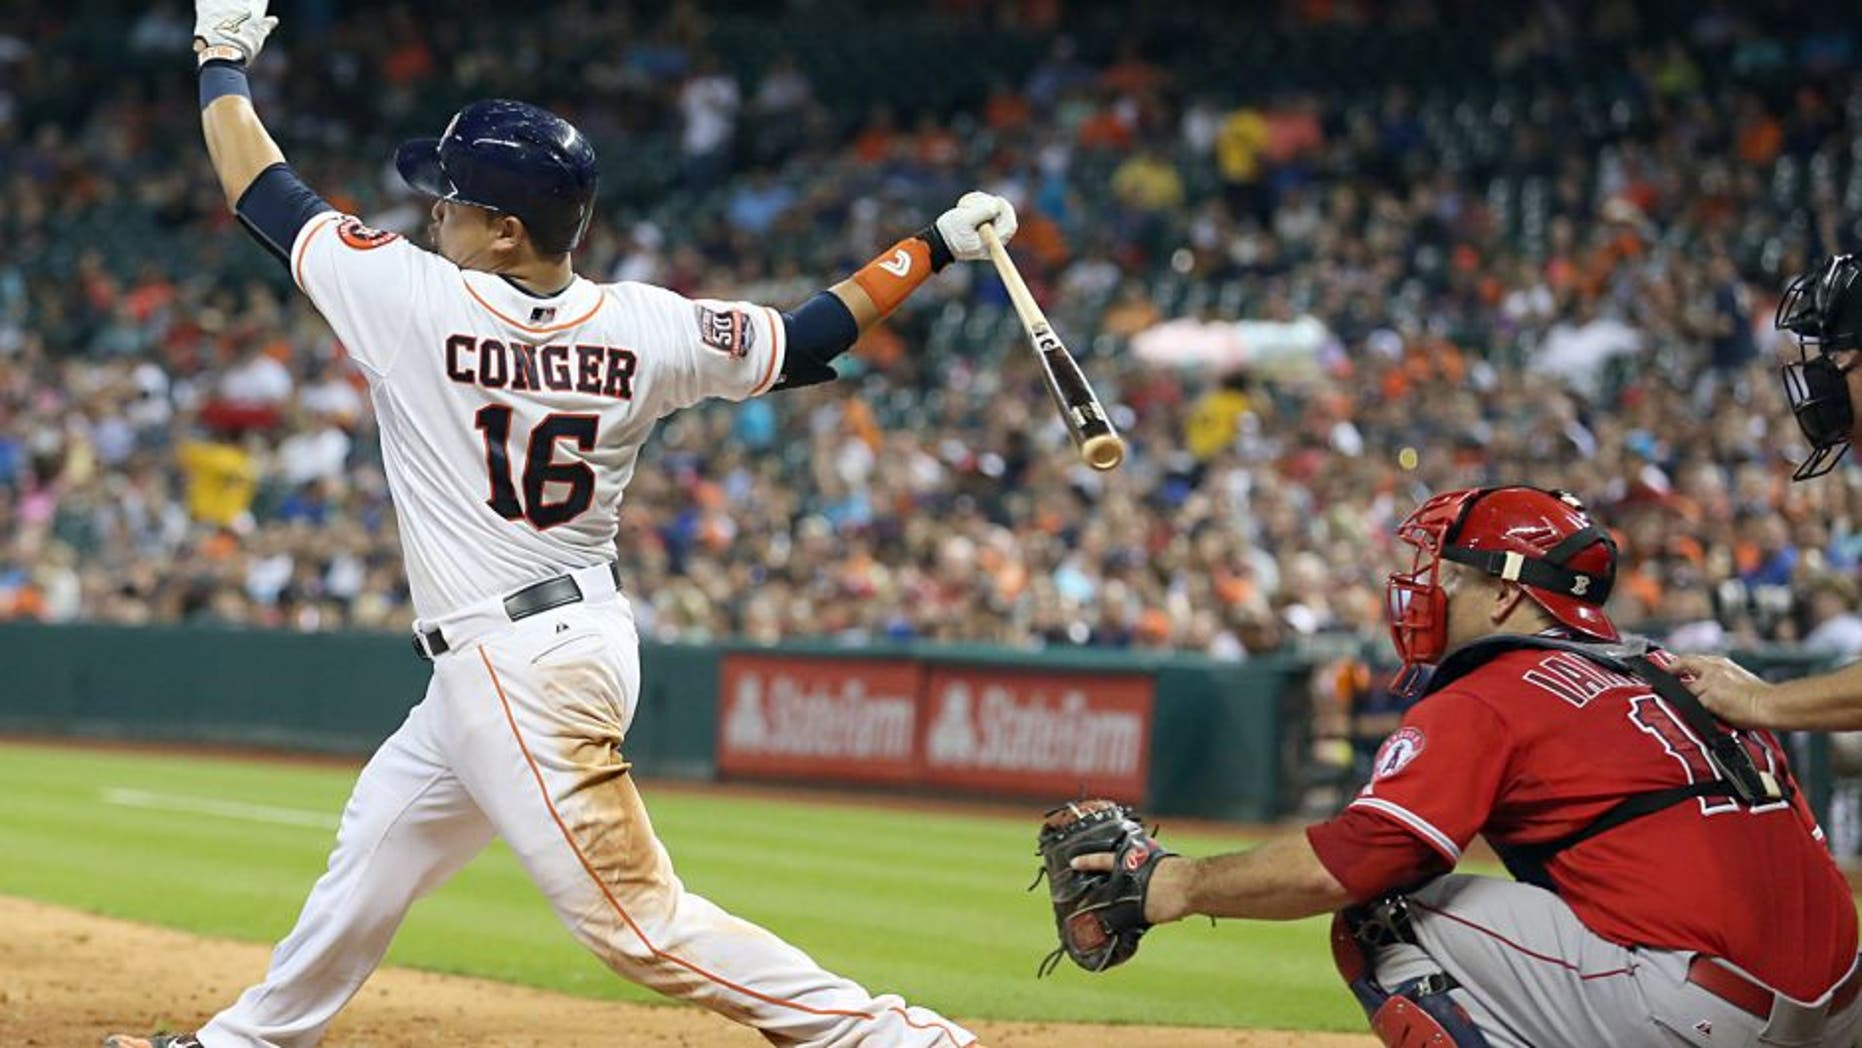 Jul 28, 2015; Houston, TX, USA; Houston Astros catcher Hank Conger (16) hits a double against the Los Angeles Angels in the sixth inning at Minute Maid Park. Astros won 10-5. Mandatory Credit: Thomas B. Shea-USA TODAY Sports